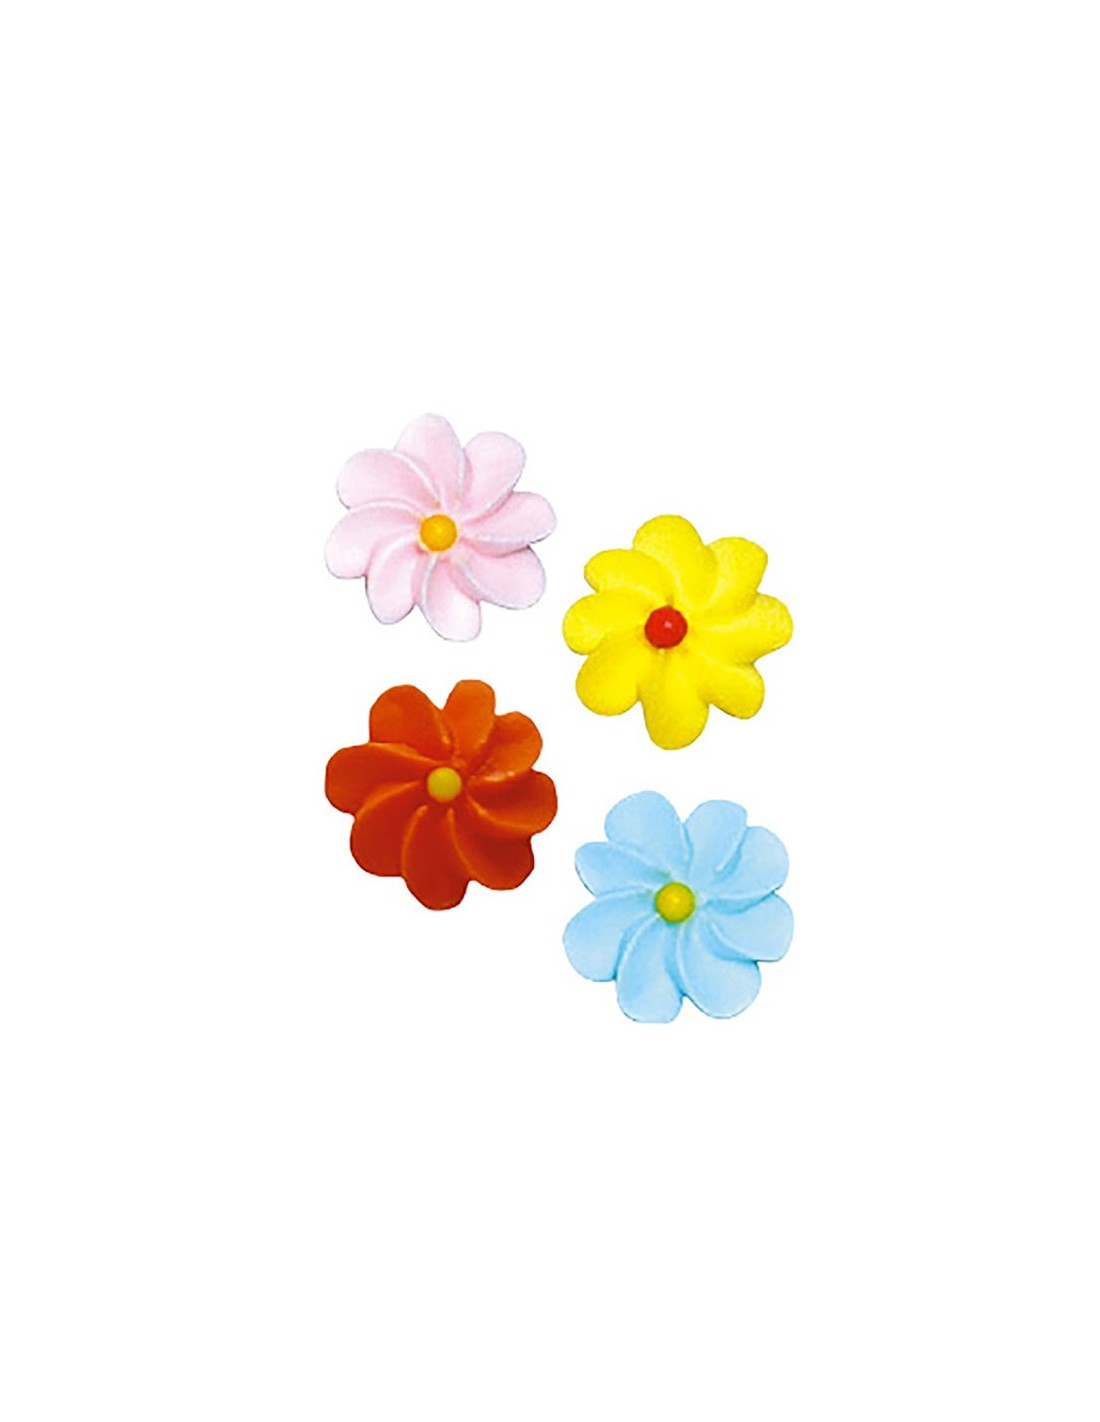 Sugar toppers shaped like daisies edible sugar flowers for cake tap to zoom izmirmasajfo